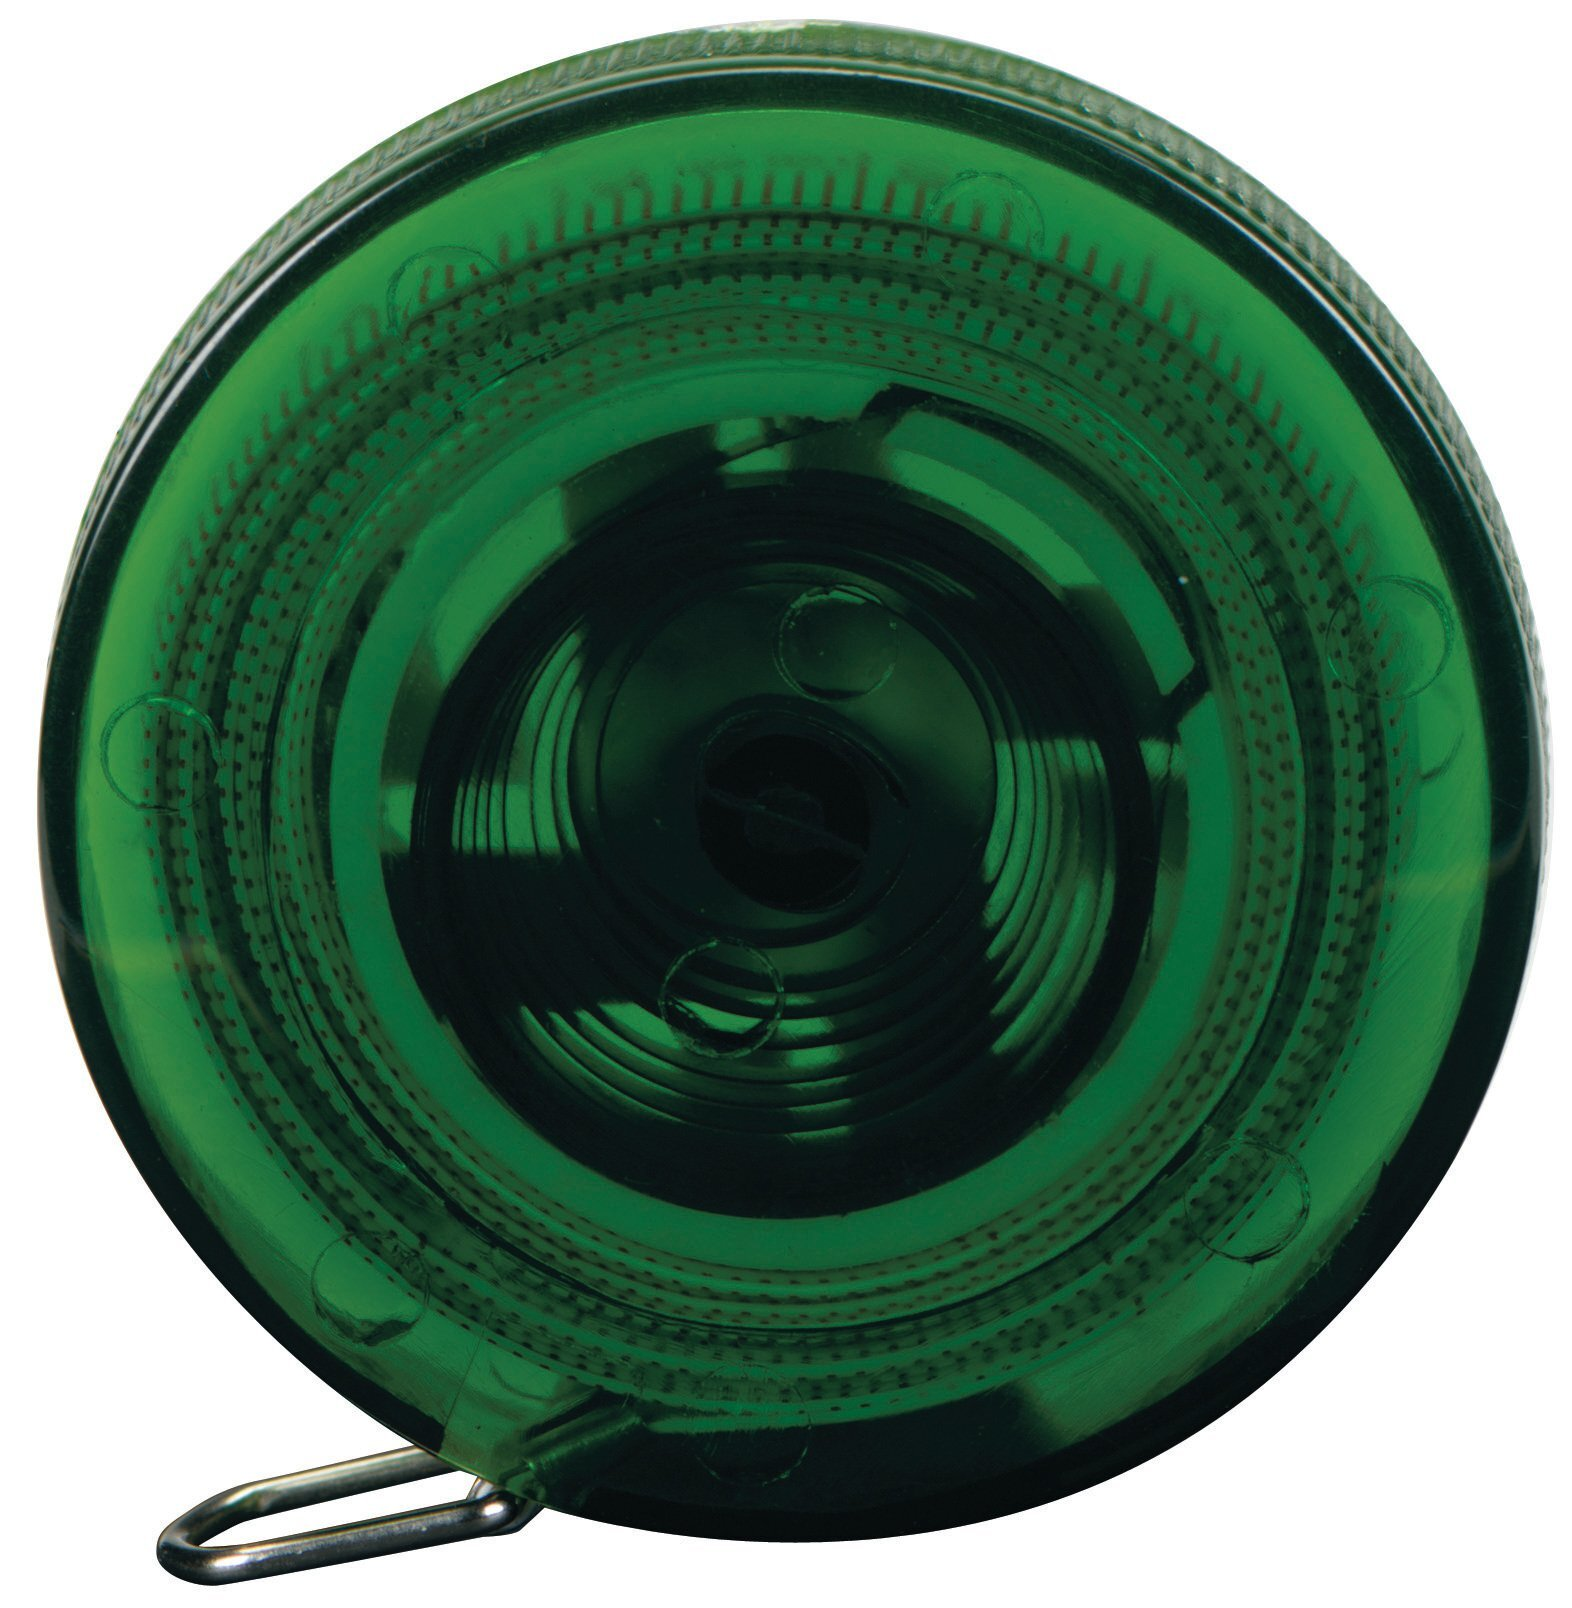 Jewel Tone Round Tape Measure, 5'